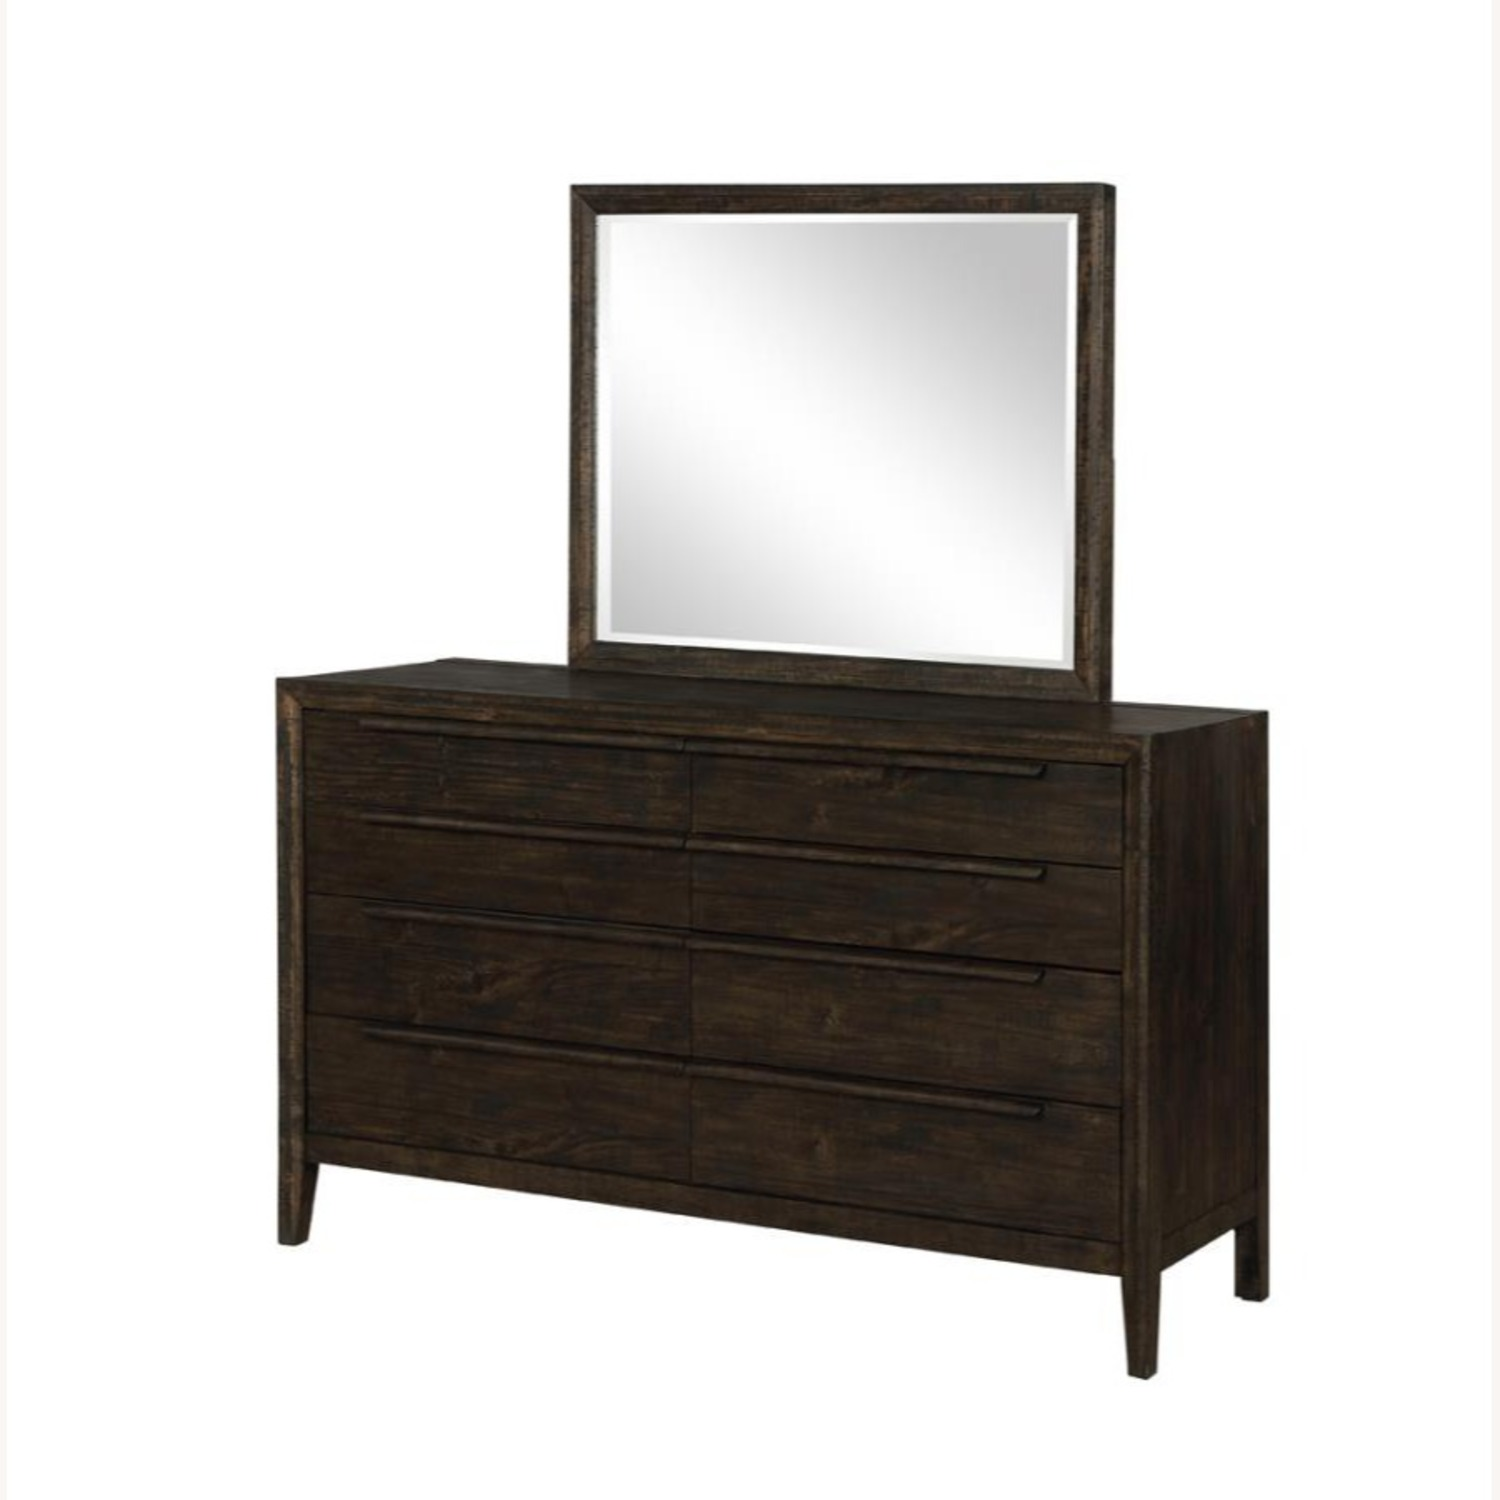 Mirror In French Press Wood Finish - image-1